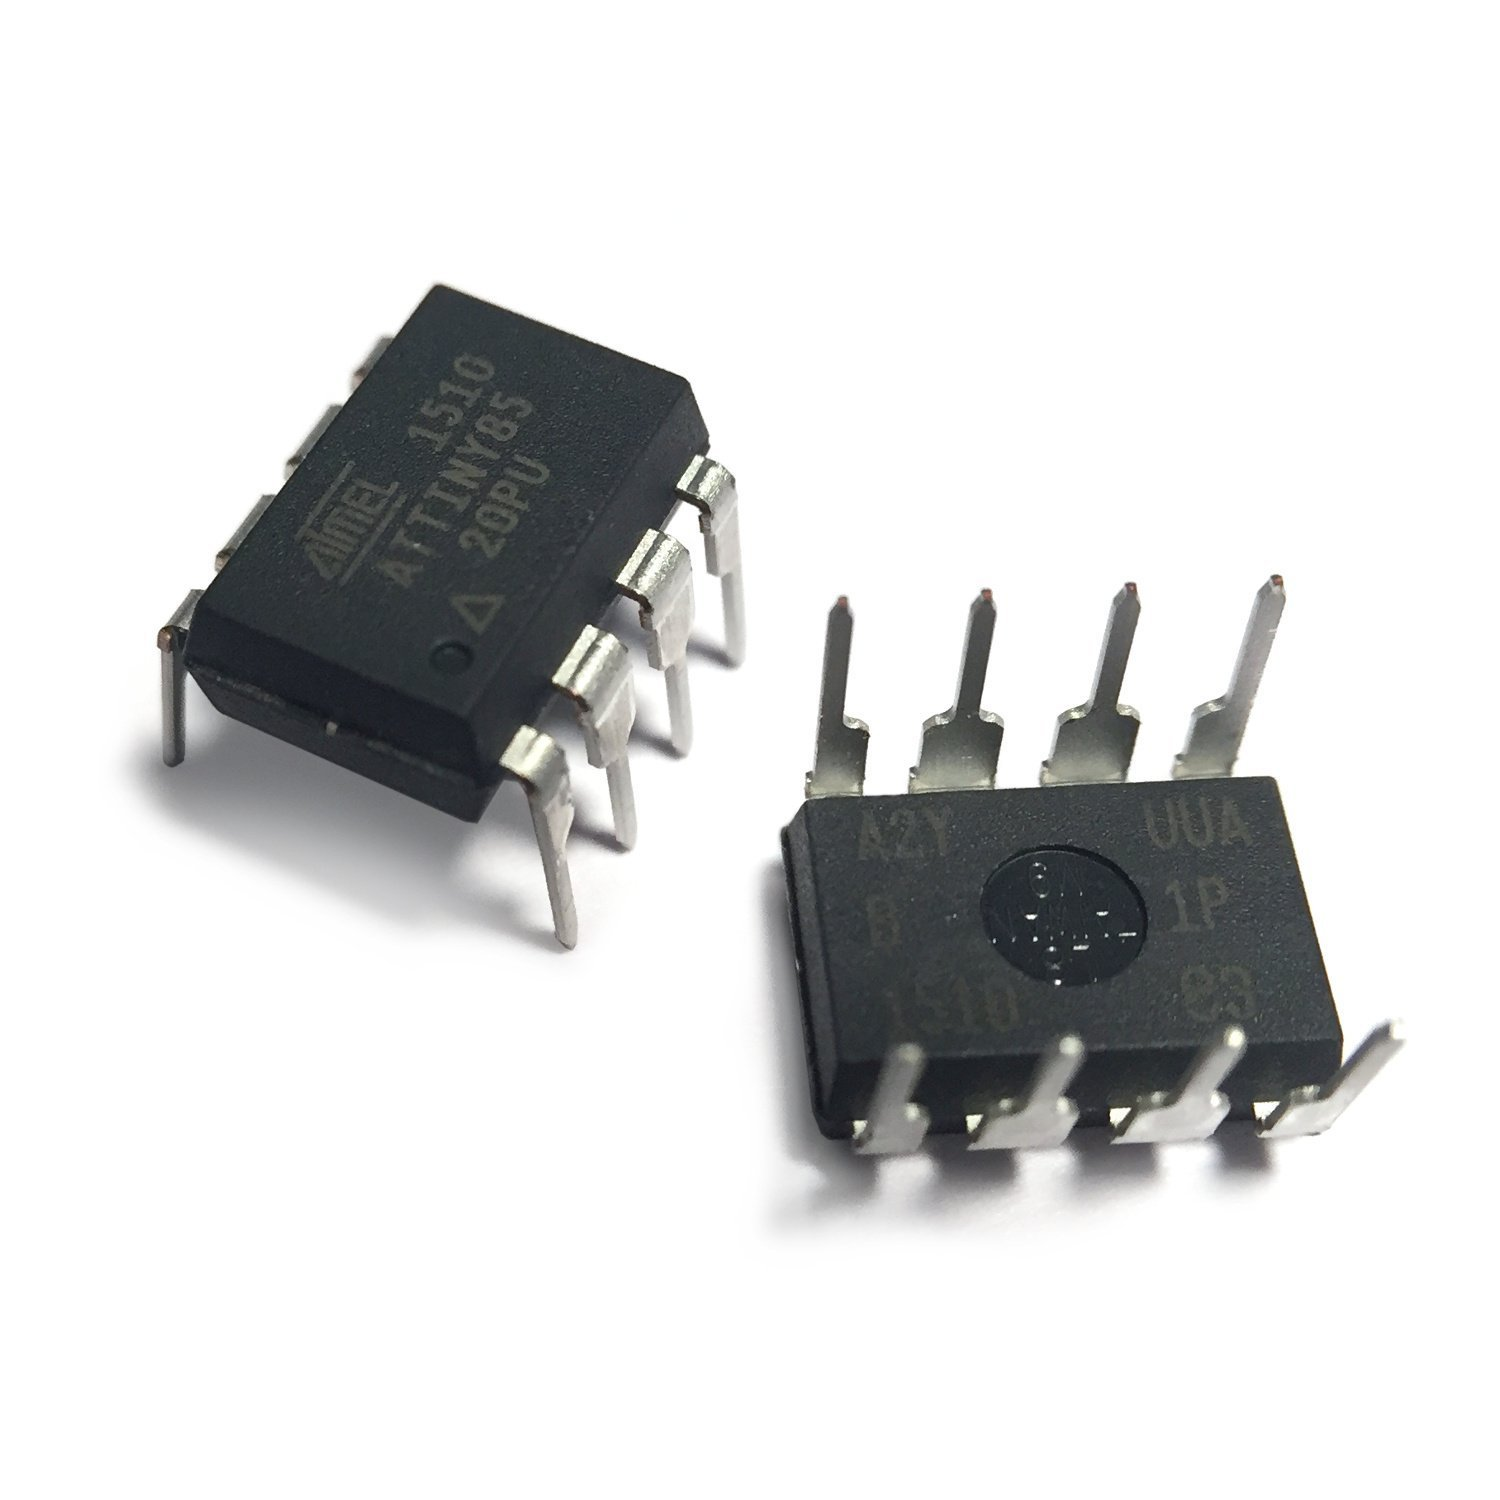 Attiny85 Microcontroller 8 Pin Pdip Computers Atmel Avr Mcu Family Expanded Accessories